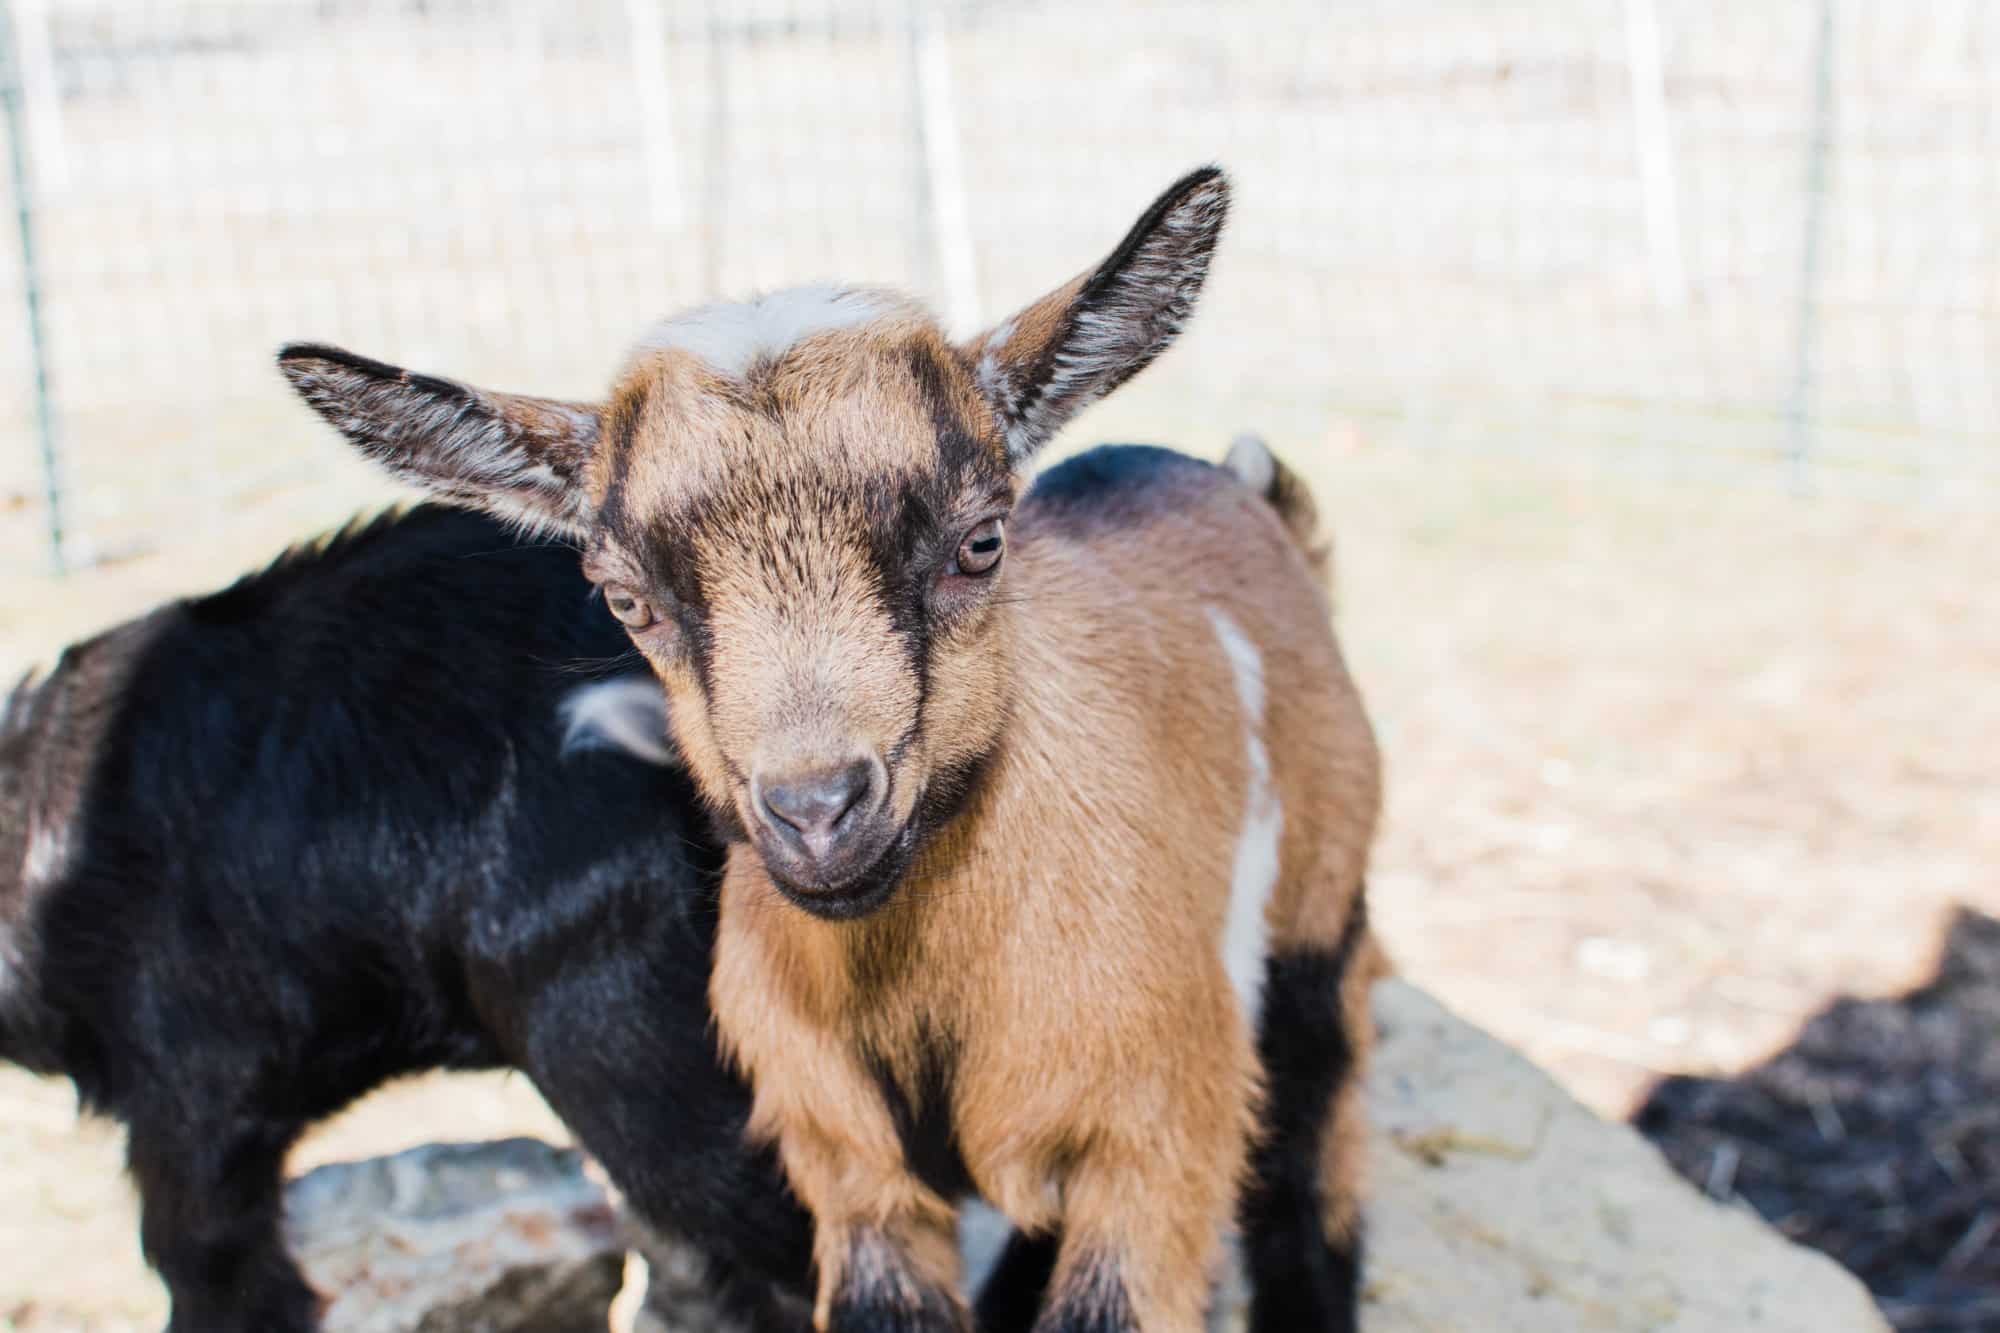 Frenchie Farm getting goat bucks not getting goat bucks